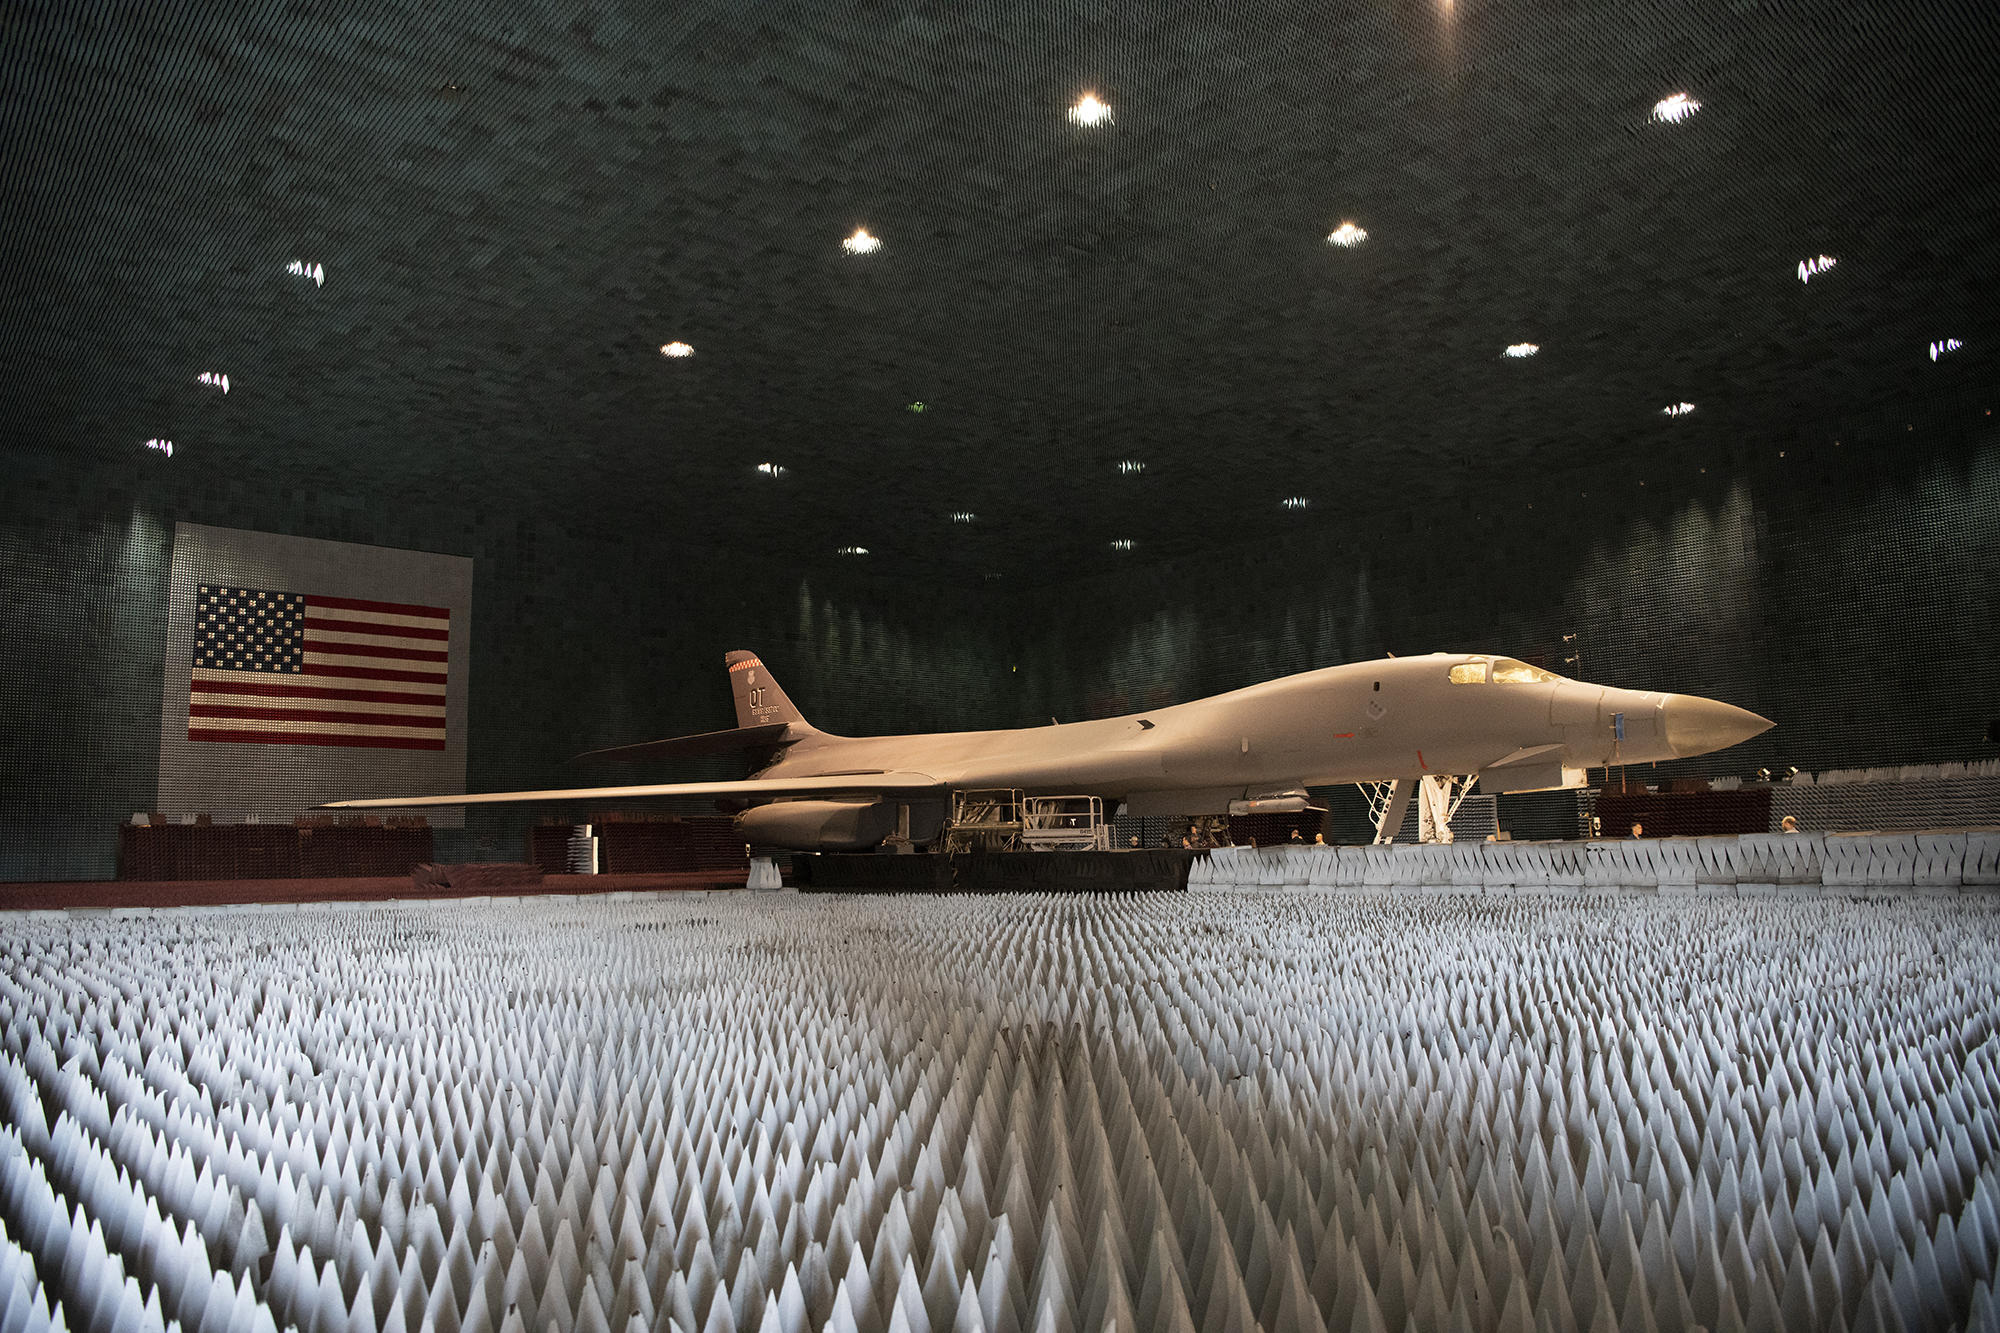 Ground crews move a B-1B Lancer into position at the Benefield Anechoic Facility on Edwards Air Force Base, Calif., May 20, 2021. The B-1B, assigned to the 337th Test and Evaluation Squadron, 53rd Wing, out of Dyess AFB, Texas, will be used to conduct testing of Pre-processor Flight Software 6.42. (1st Lt. Christine Saunders/Air Force)